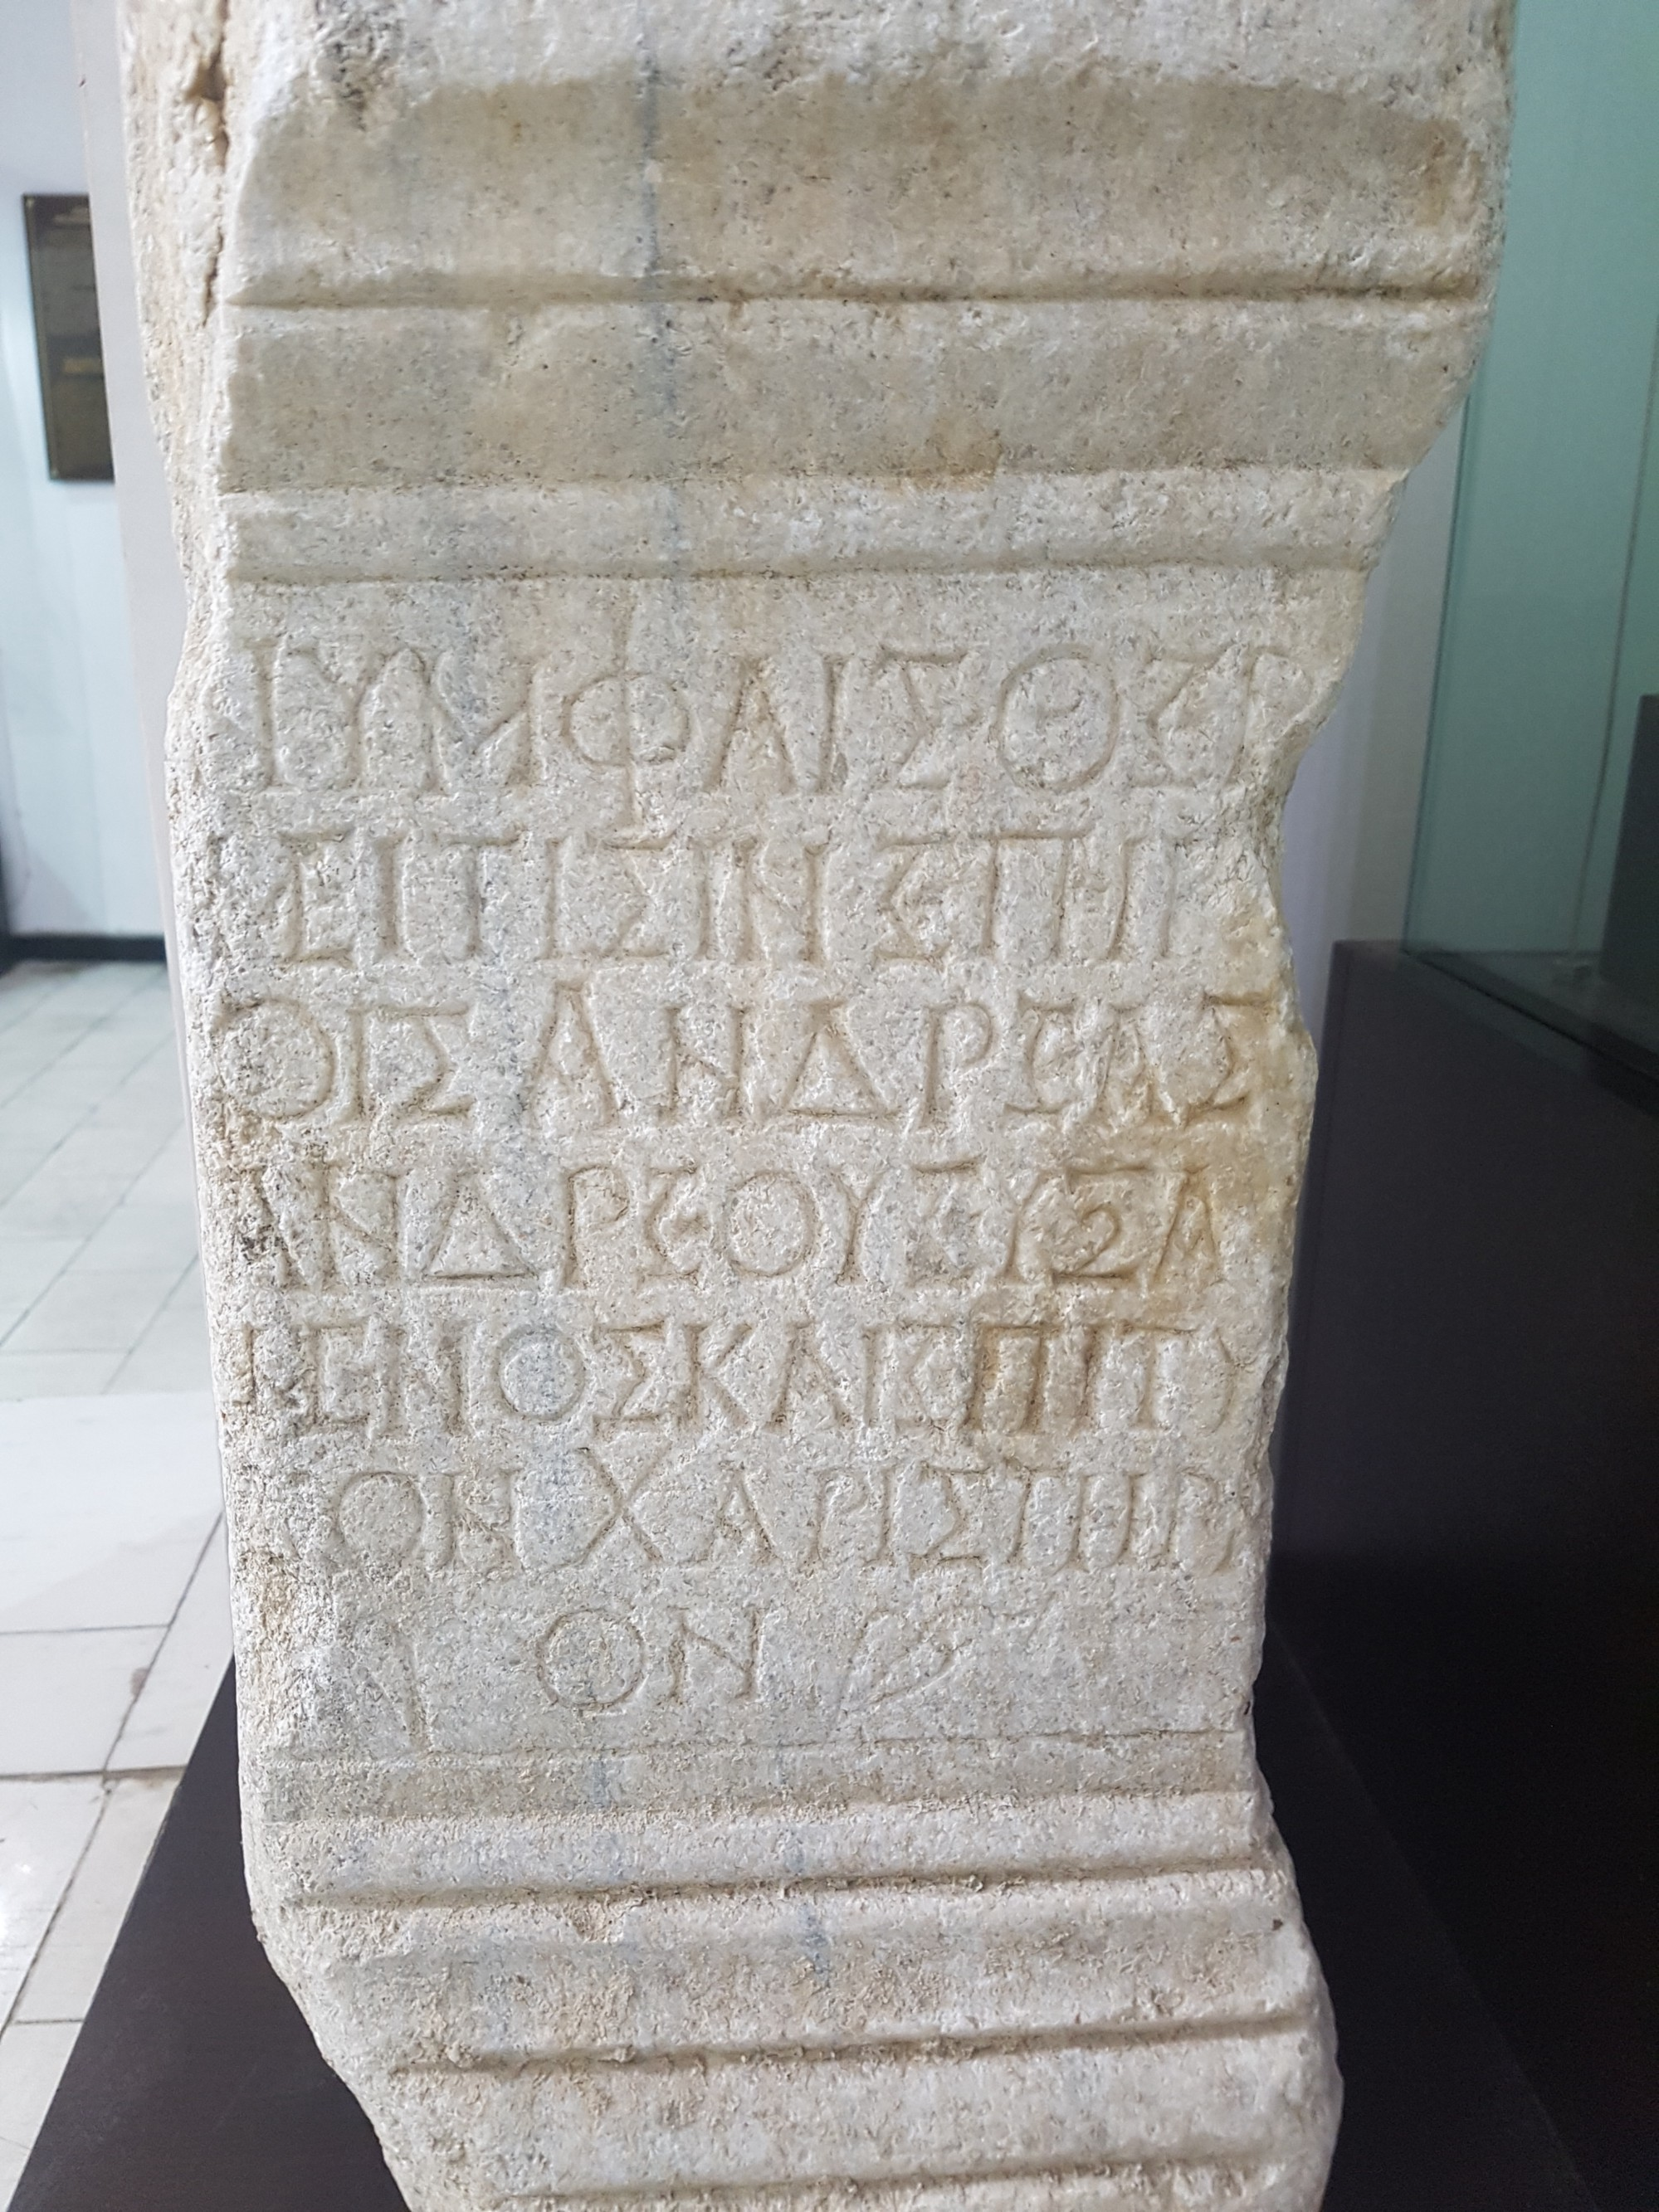 Votive Inscription to the Thermal Nymphs, 2nd Century AD. The Hisarya Museum of Archeology, Bulgaria (photographed by the aut